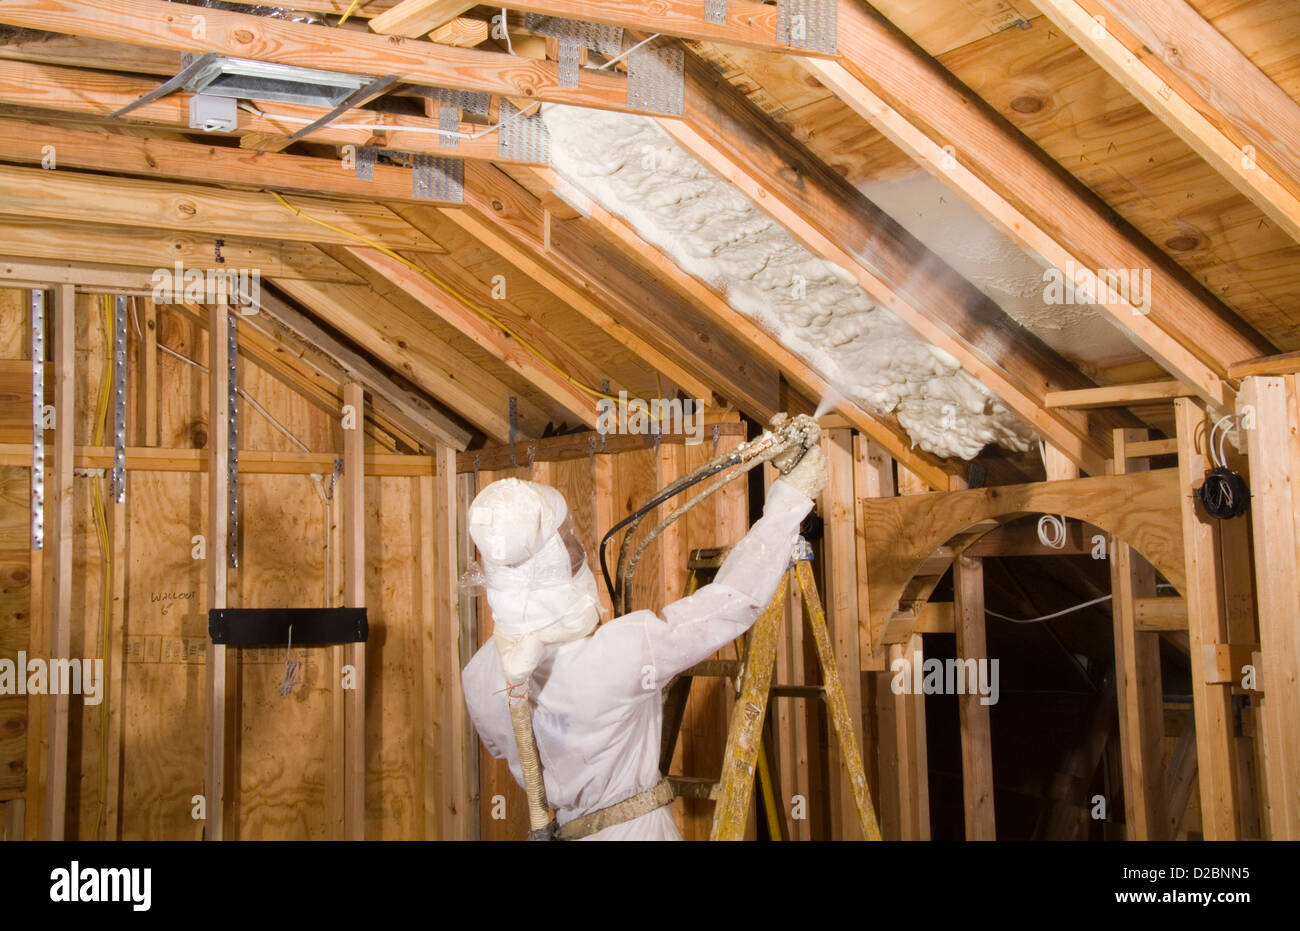 Saving energy in home by spraying insulation into ceiling for Insulate your home for free